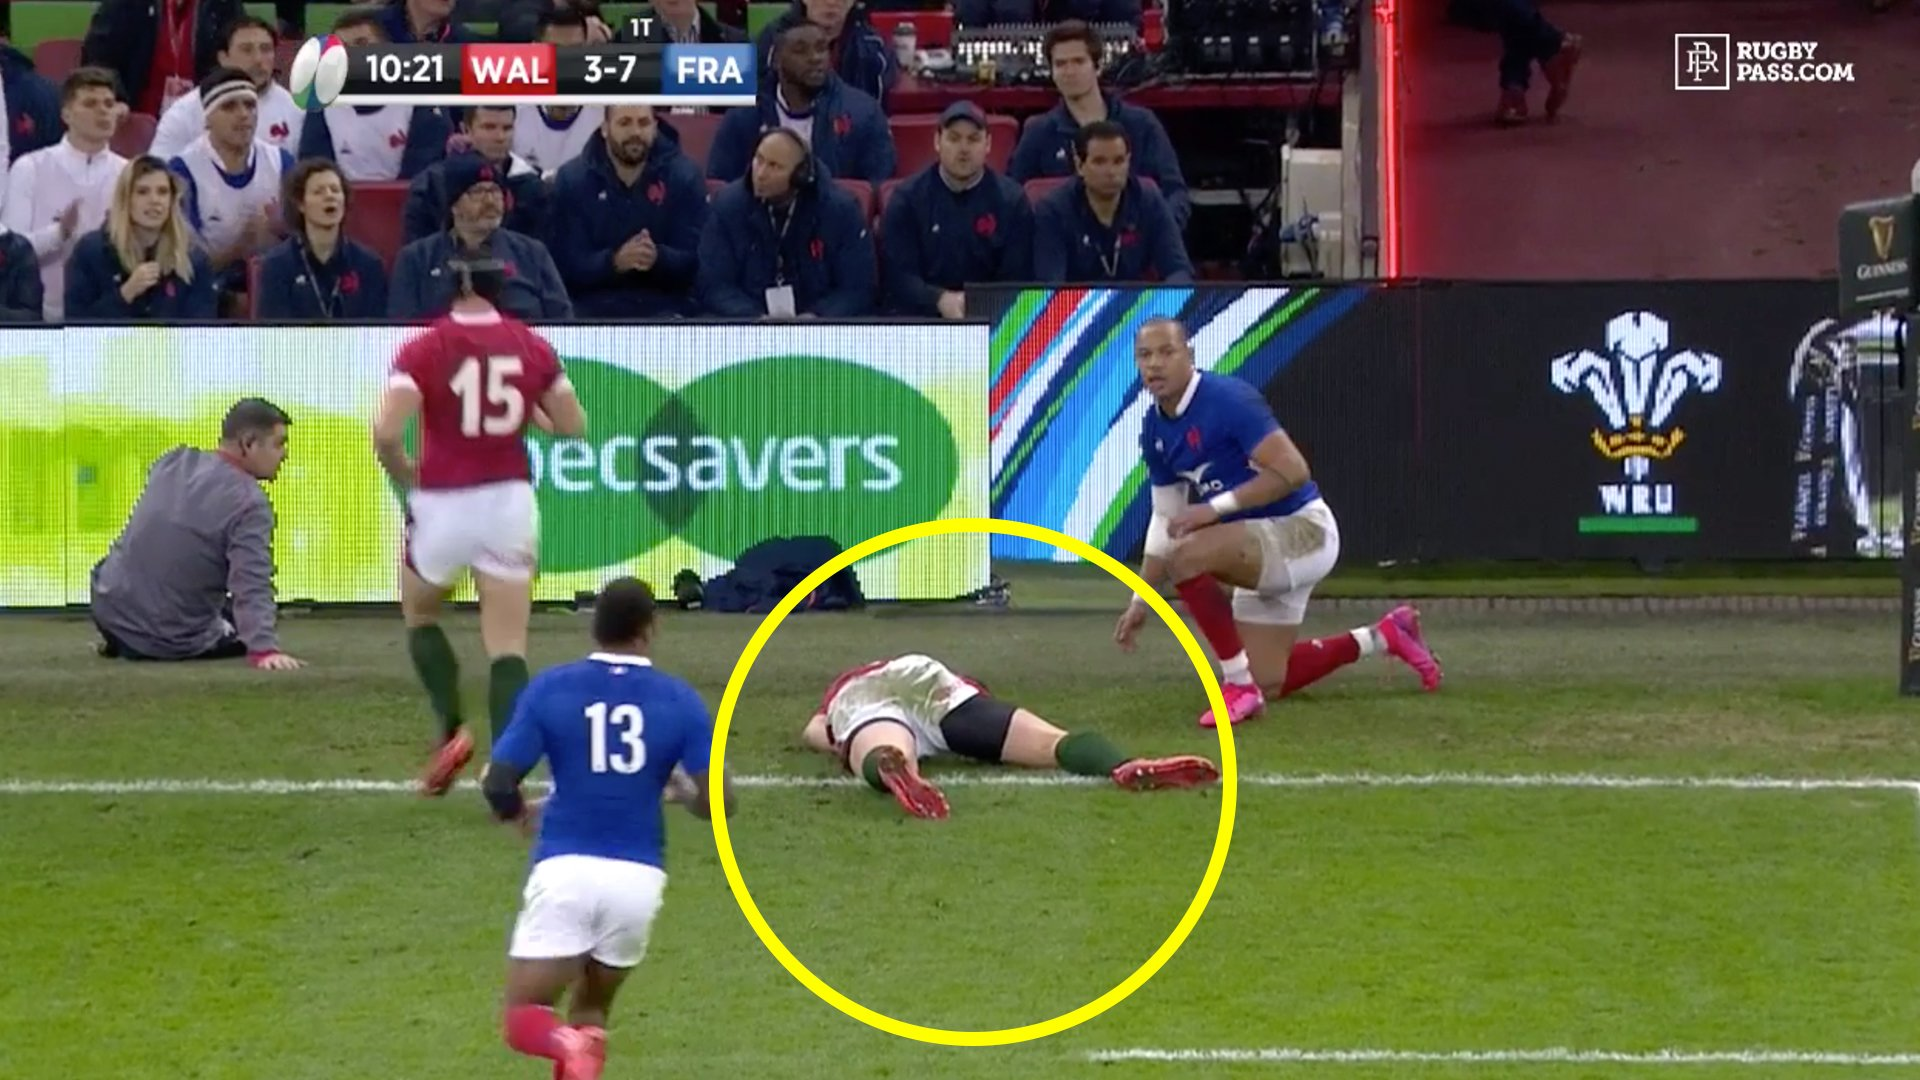 George North suffers another sickening concussion knock out in Six Nations